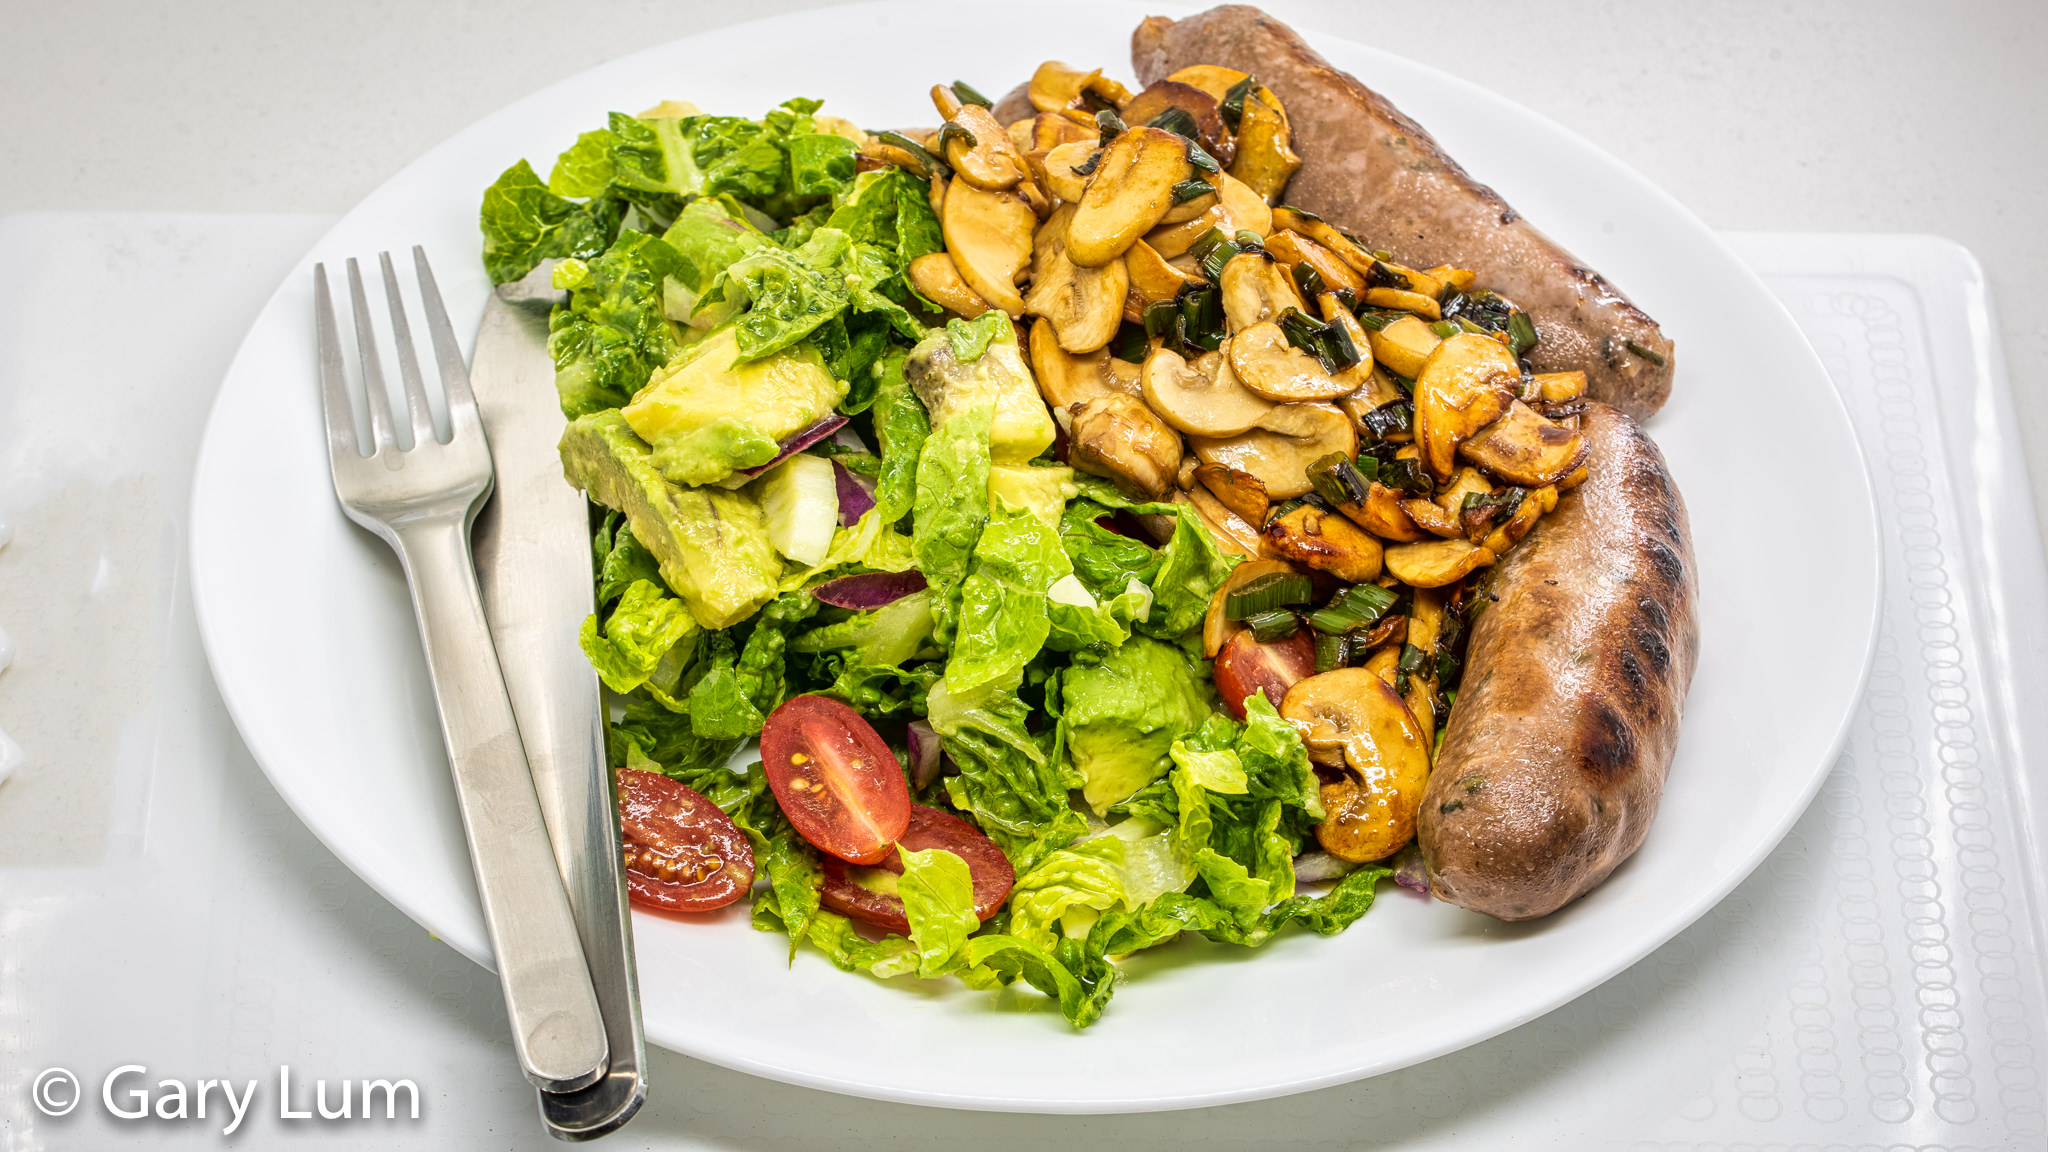 Beef sausages and avocado salad with fennel, red onion, radish and creamy mushrooms. Gary Lum.